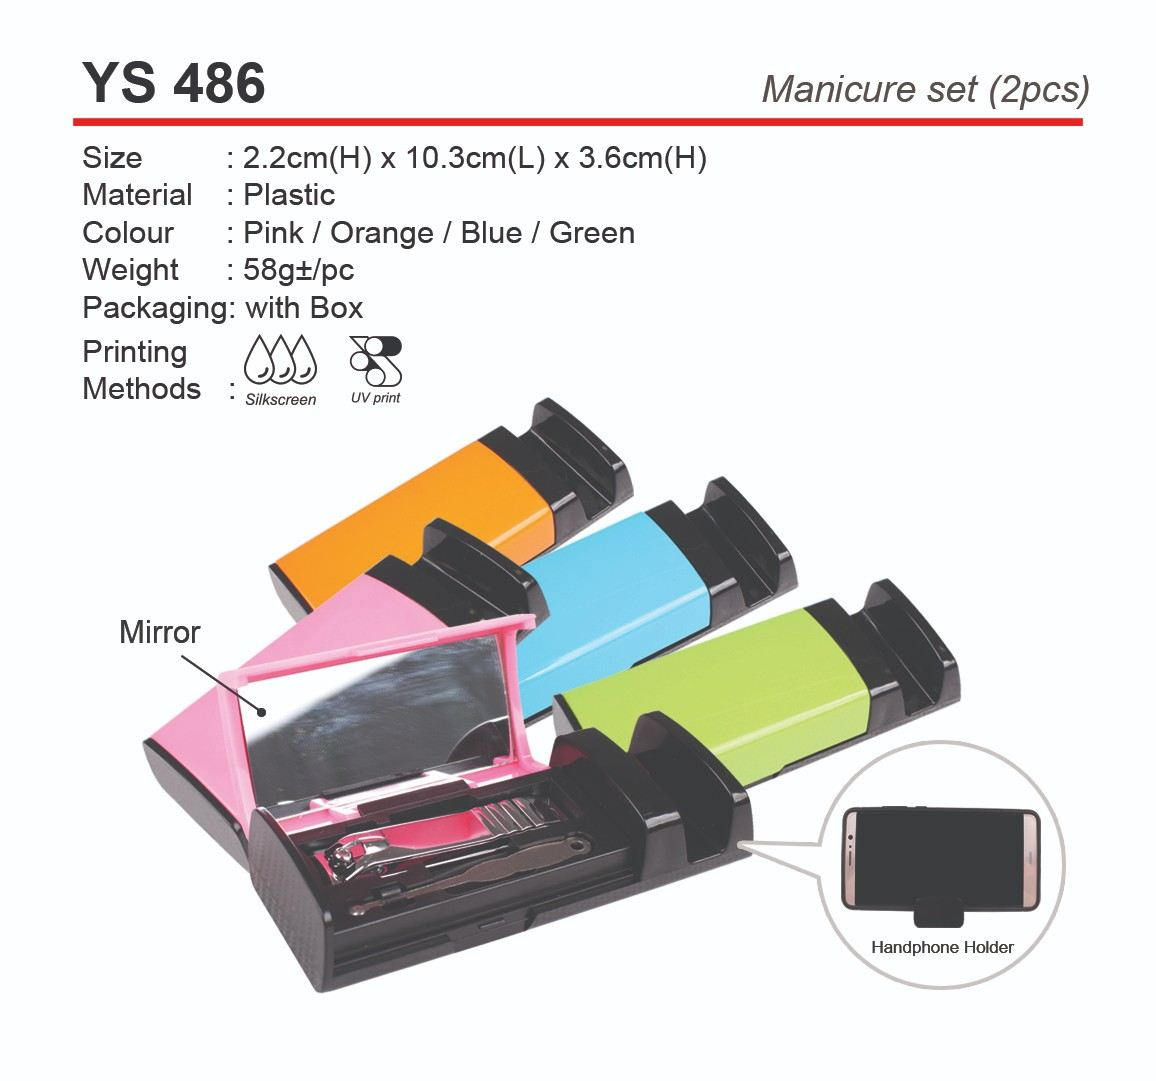 YS486 Manicure Set (2pcs)